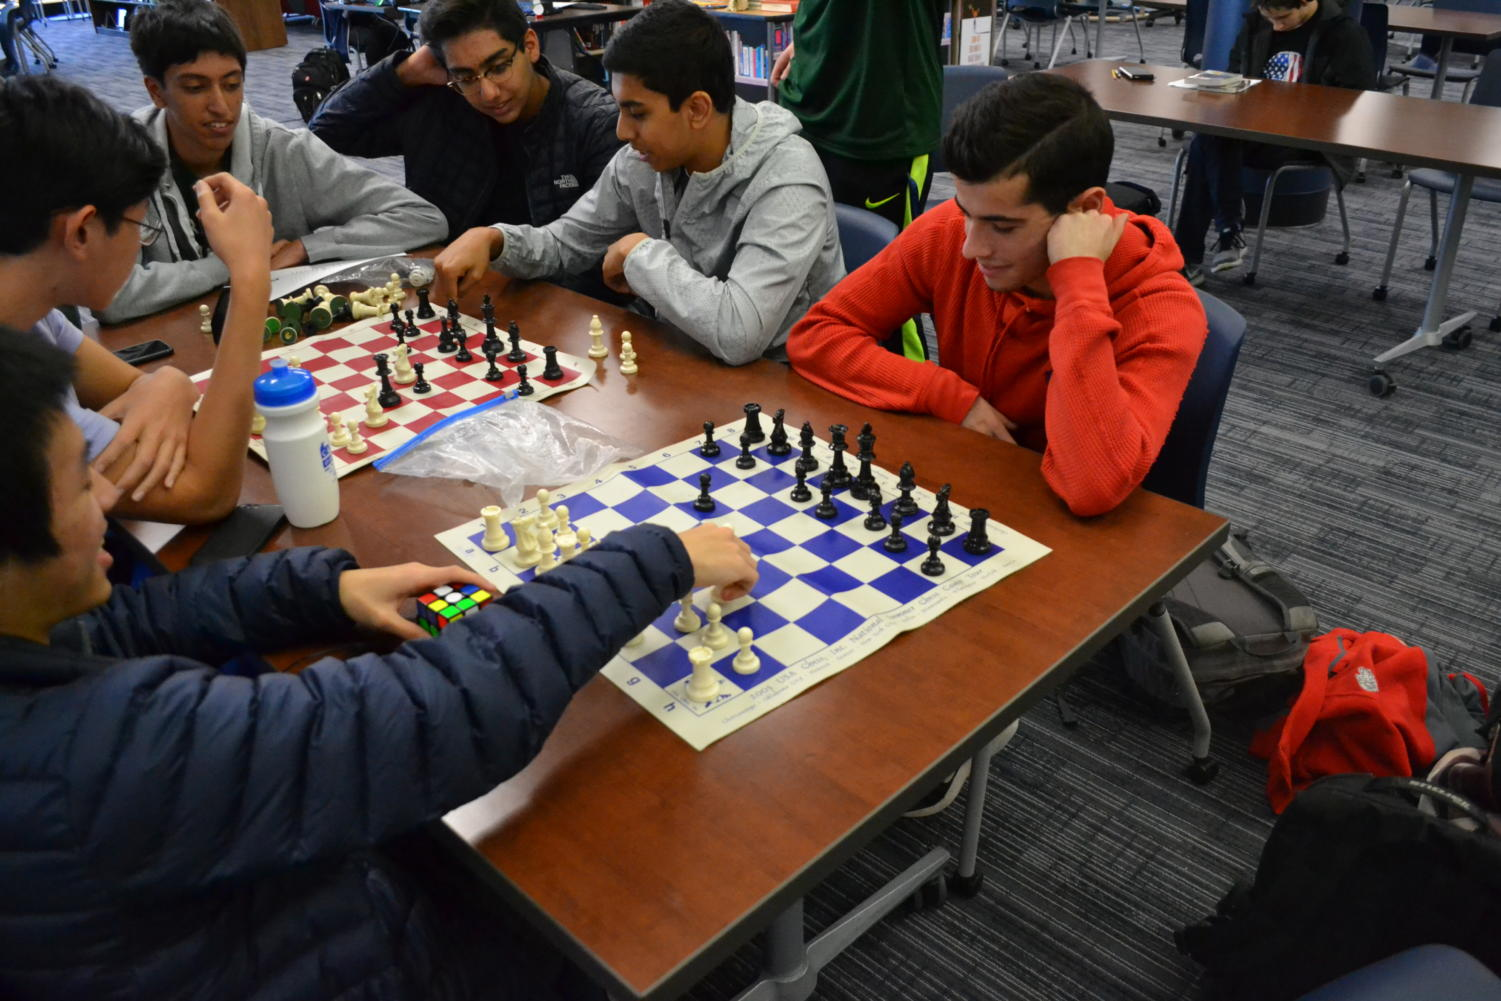 """Paul Gipkhin is planning his strategy of attack in a chess game against Jason Wan. Gipkhin memorized all his opening moves and plans to use his specialty. """"My favorite opening is the Sicilian Defense opening,"""" Gipkhin said. """"It is a powerful opening and it is my specialty. I still need to perfect it so I have to practice different variations."""""""